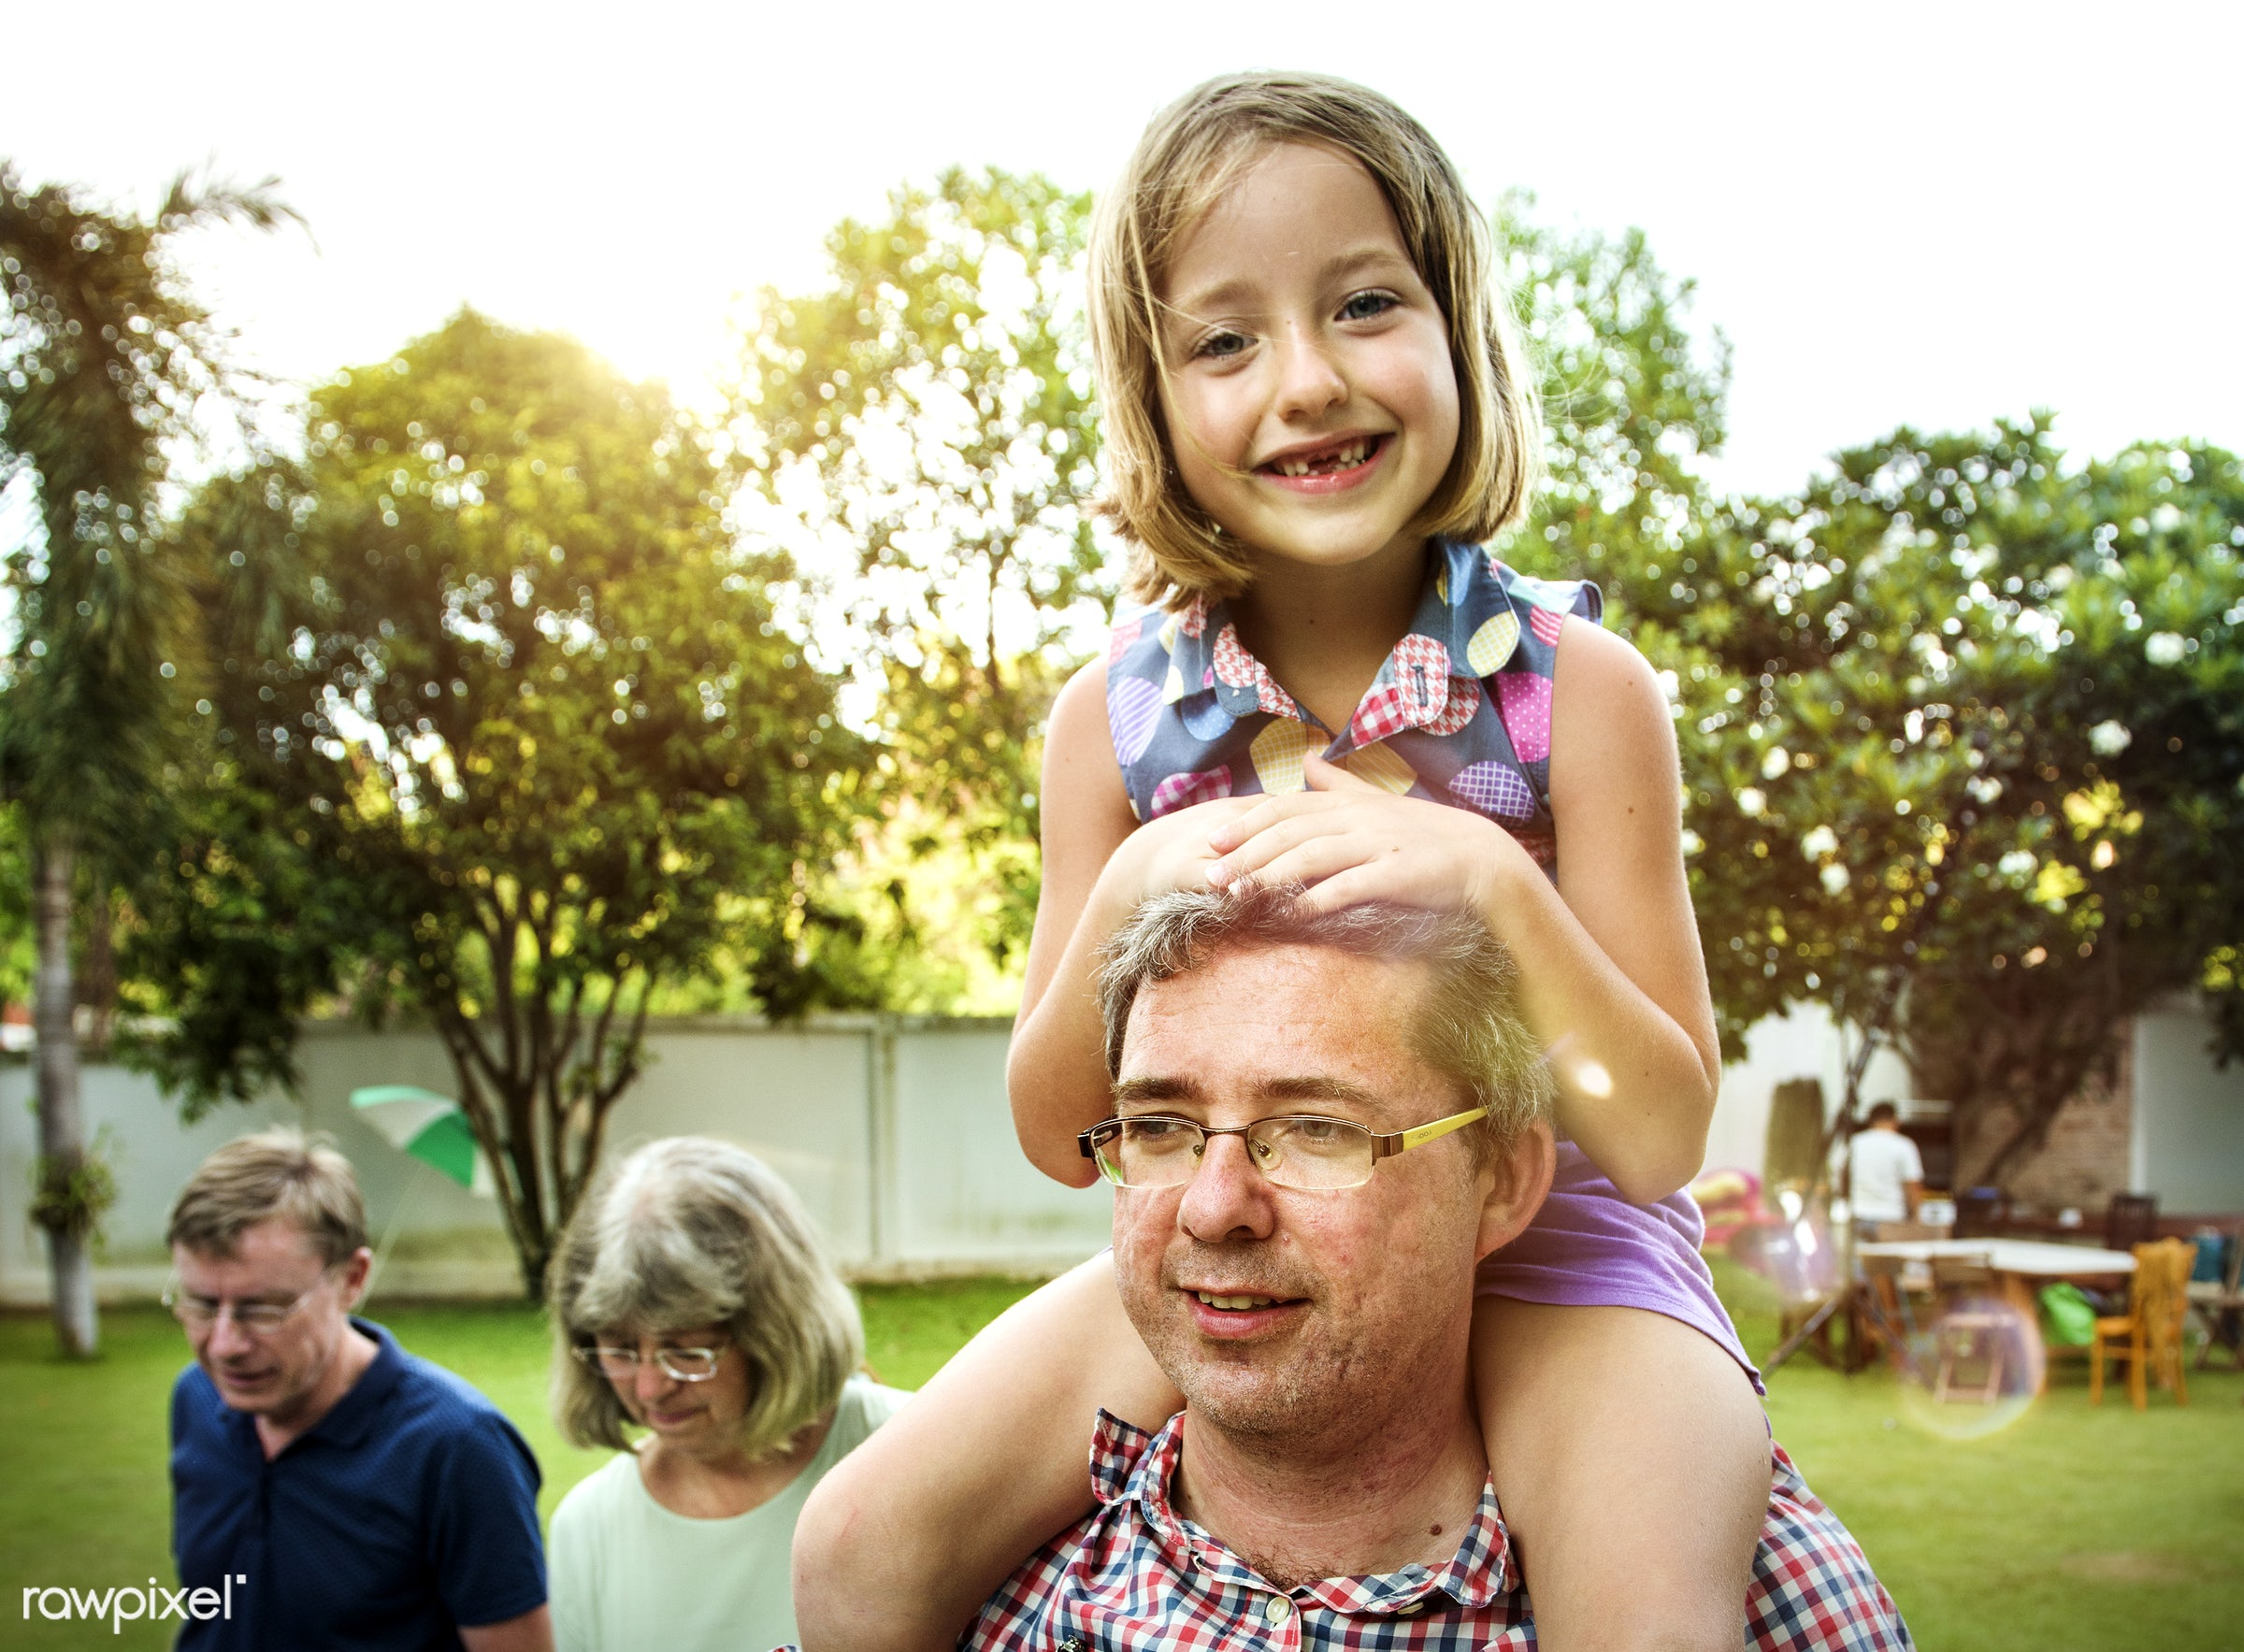 neck, relax, daughter, together, caucasian, father, riding, family, backyard, bbq, cheerful, smiling, closeup, dad, enjoying...